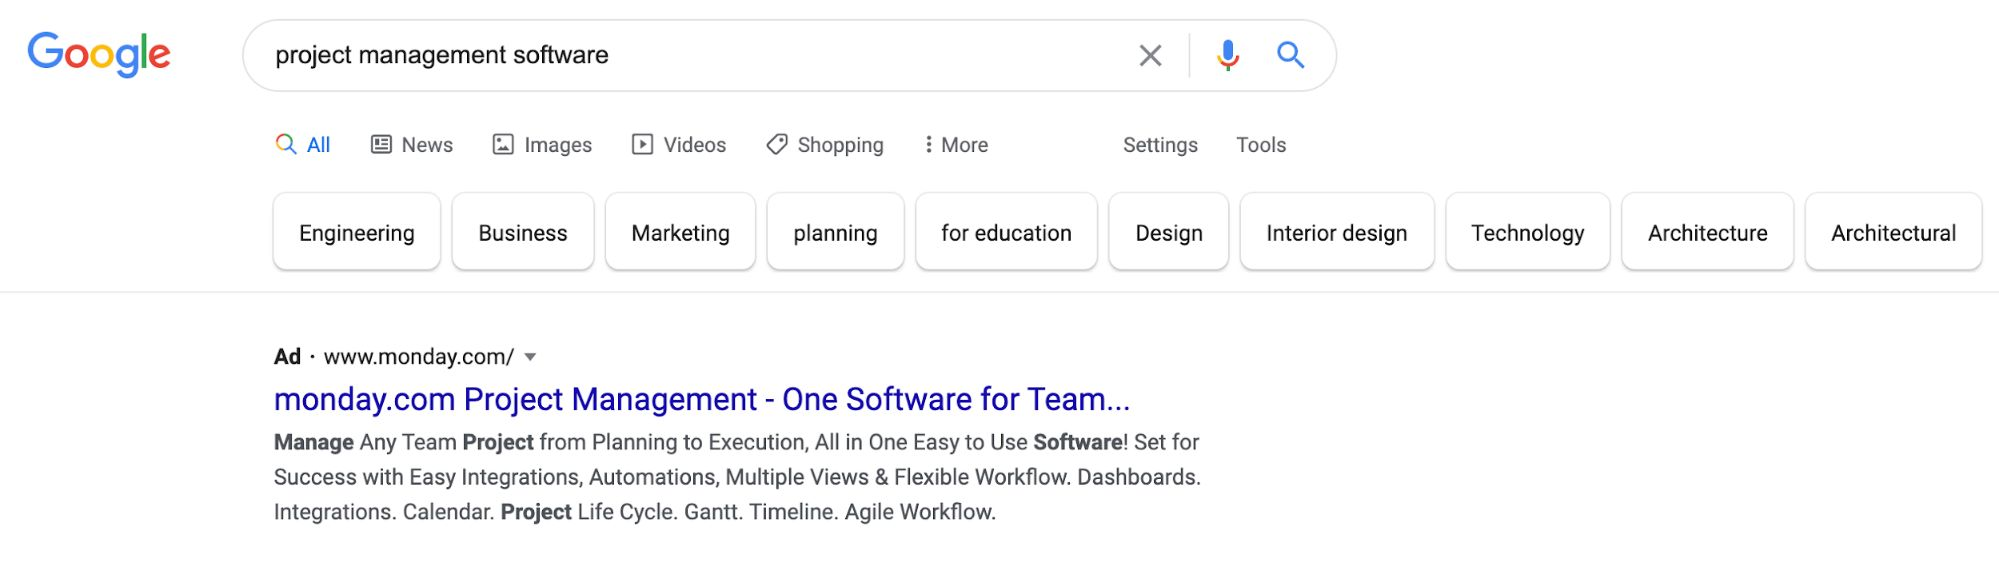 Project management software search result.